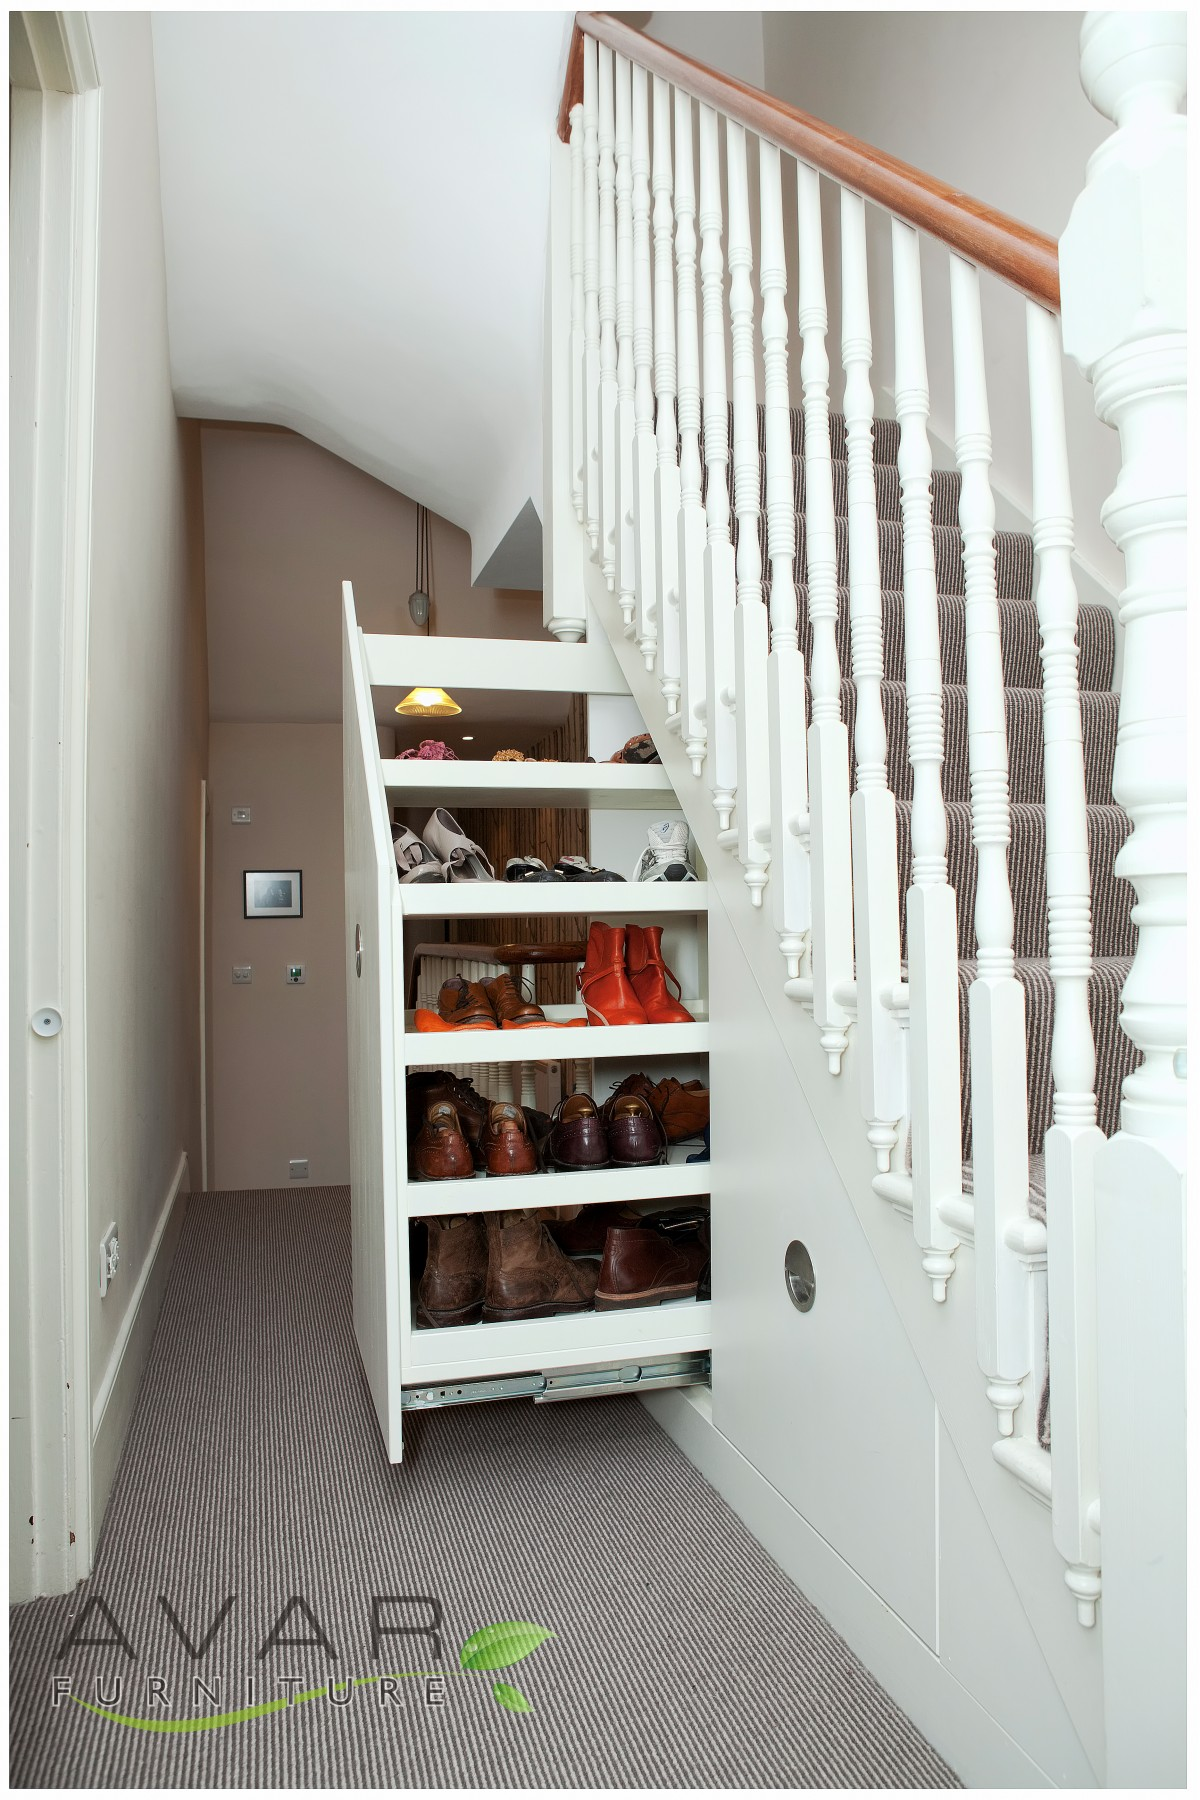 Nische Küche Nutzen ƸӜƷ Under Stairs Storage Ideas Gallery 14 North London